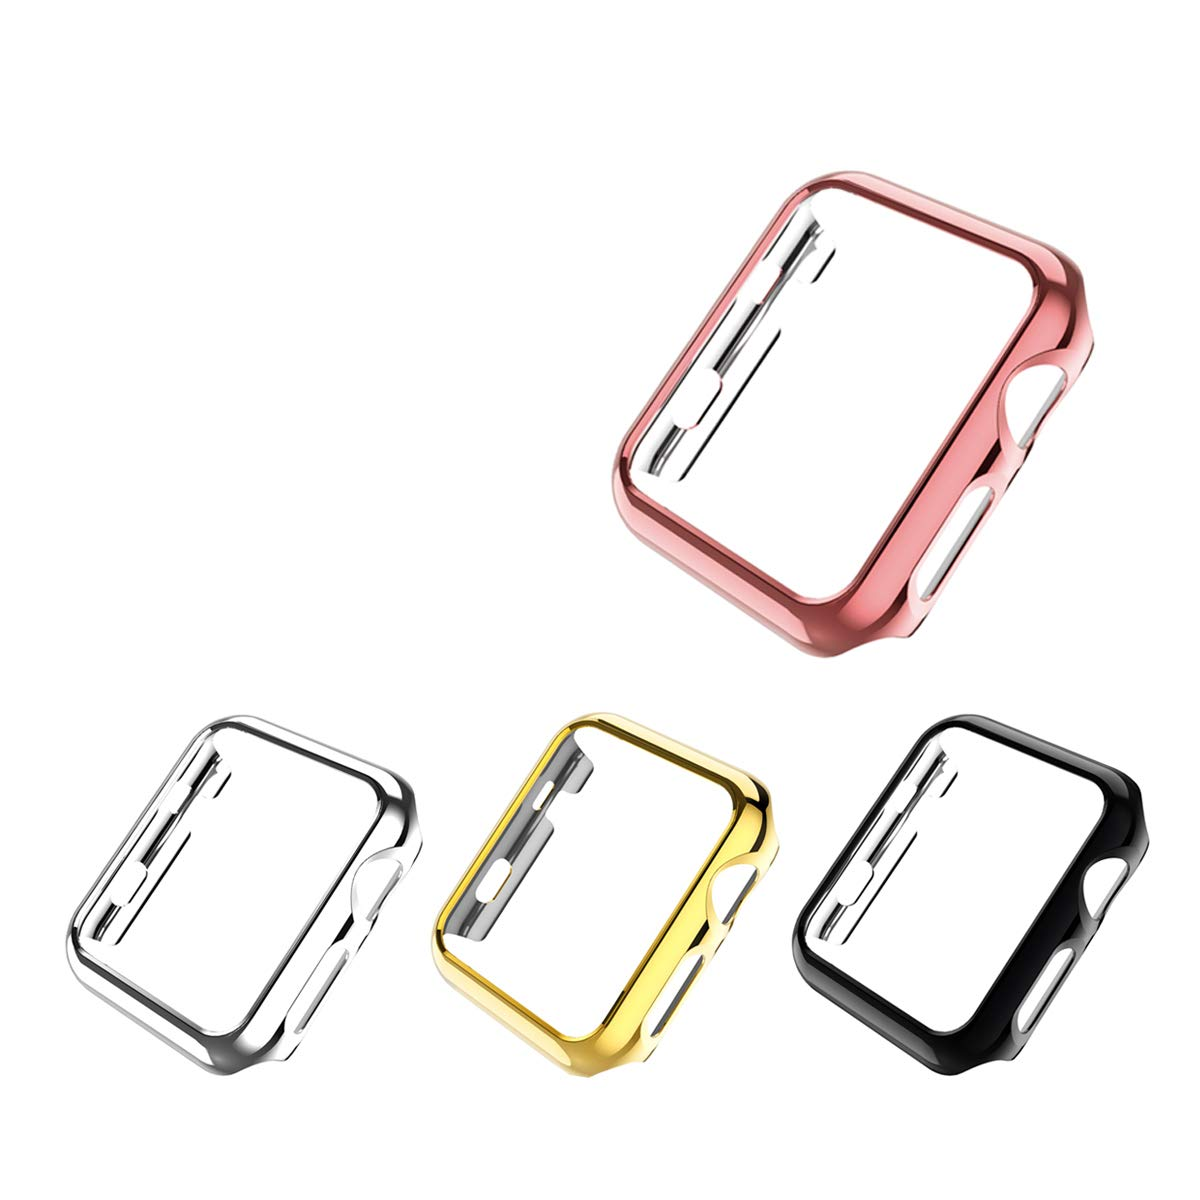 Leotop Compatible with Apple Watch Case 44mm 40mm, Super Thin PC Plated Bumper Protector Shiny Cover Lightweight Slim Shell Shockproof Frame Accessories Compatible iWatch Series 4 (4 Color Pack, 40mm) by Leotop